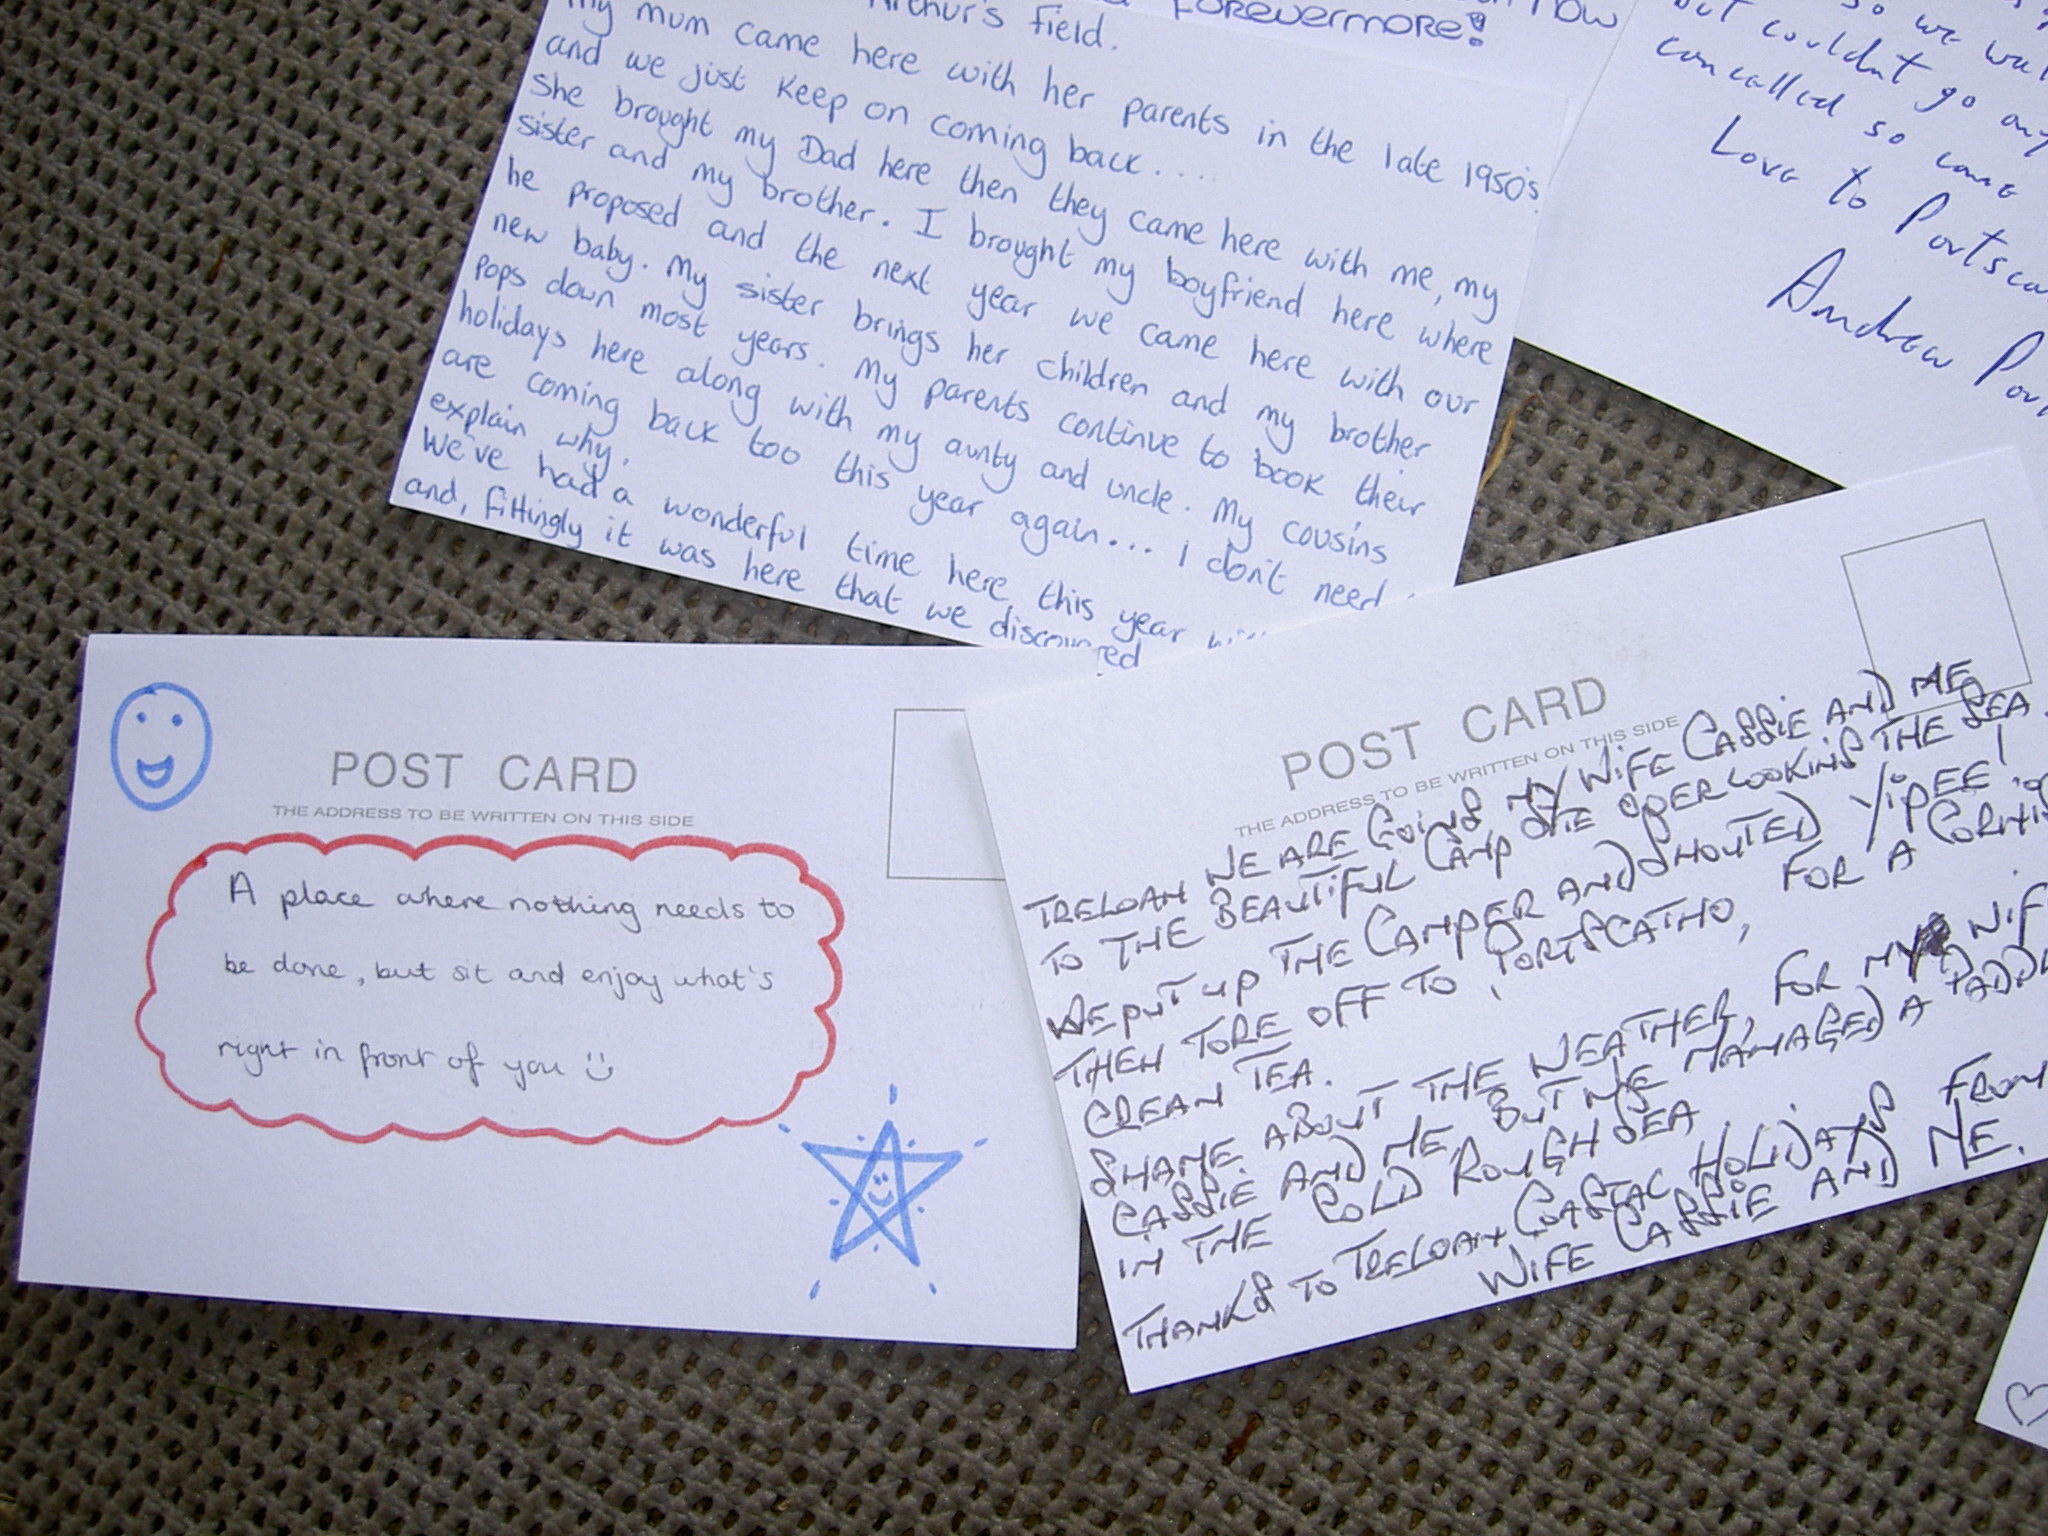 Postcards posted to Portscatho